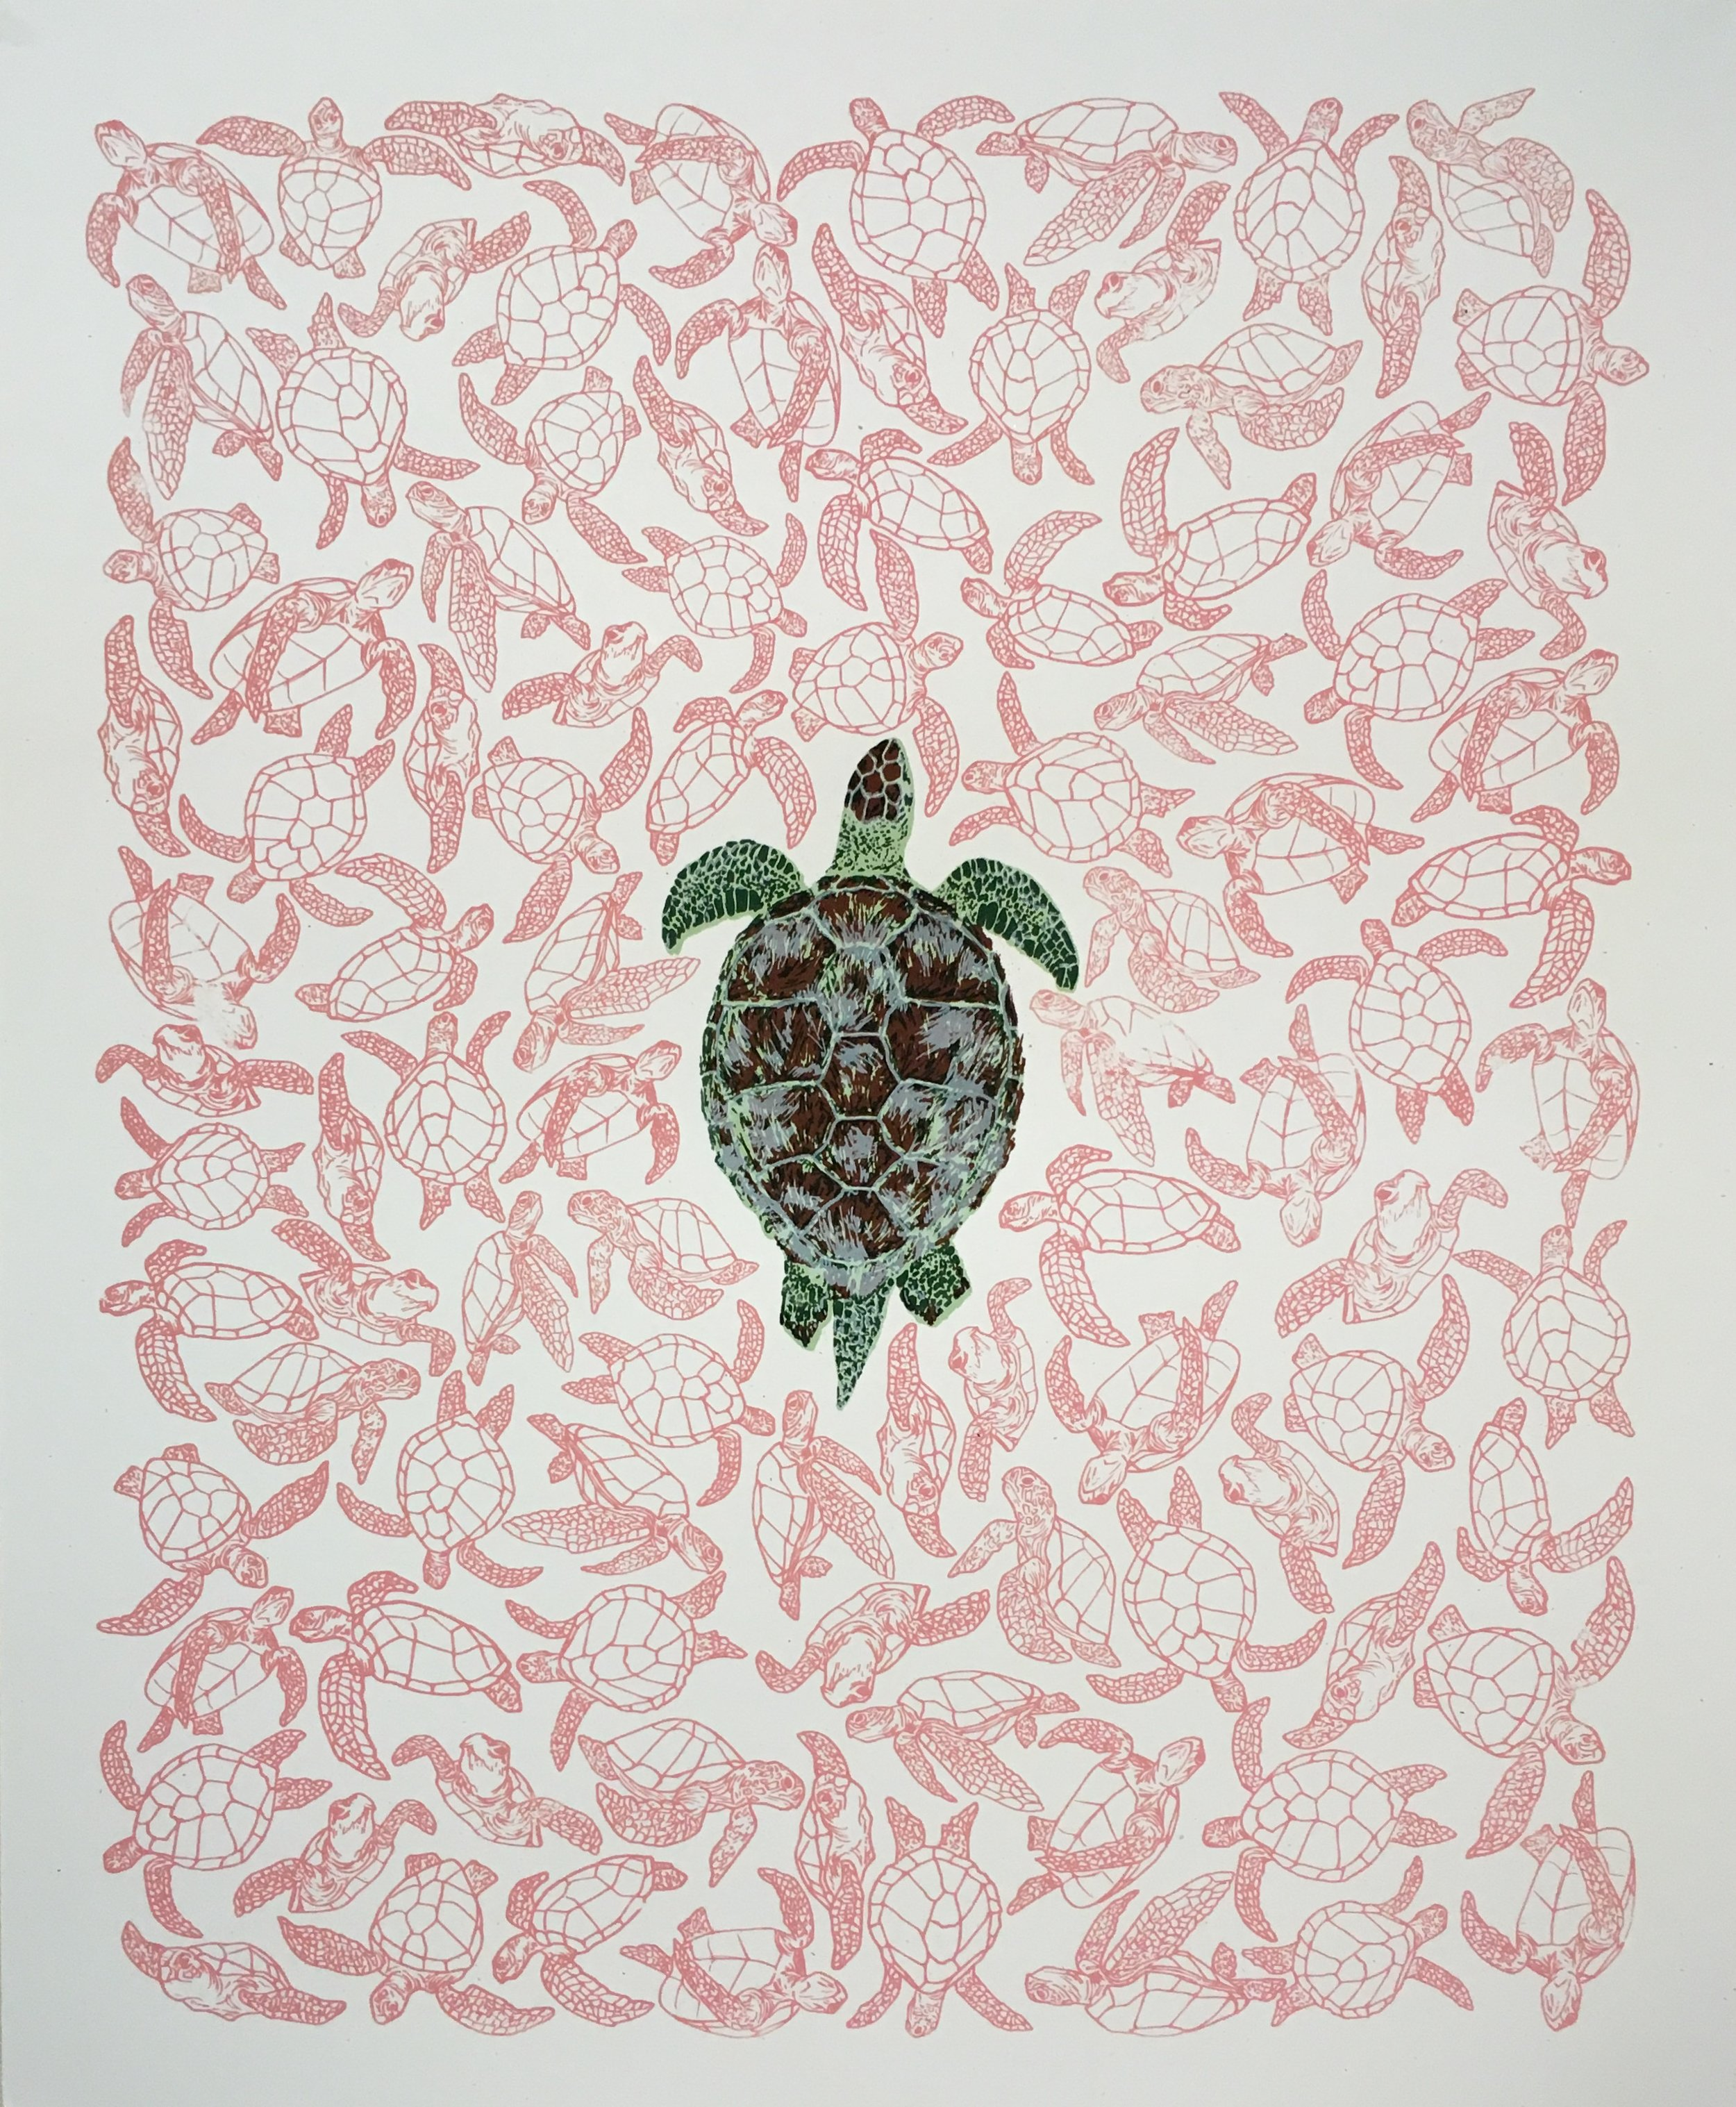 99°, 99% by Yeisy Rodriguez is a five-color screen print, depicting sea turtle populations in the warmer, northern beaches, with only one male turtle in the center, surrounded by 99 female turtles.